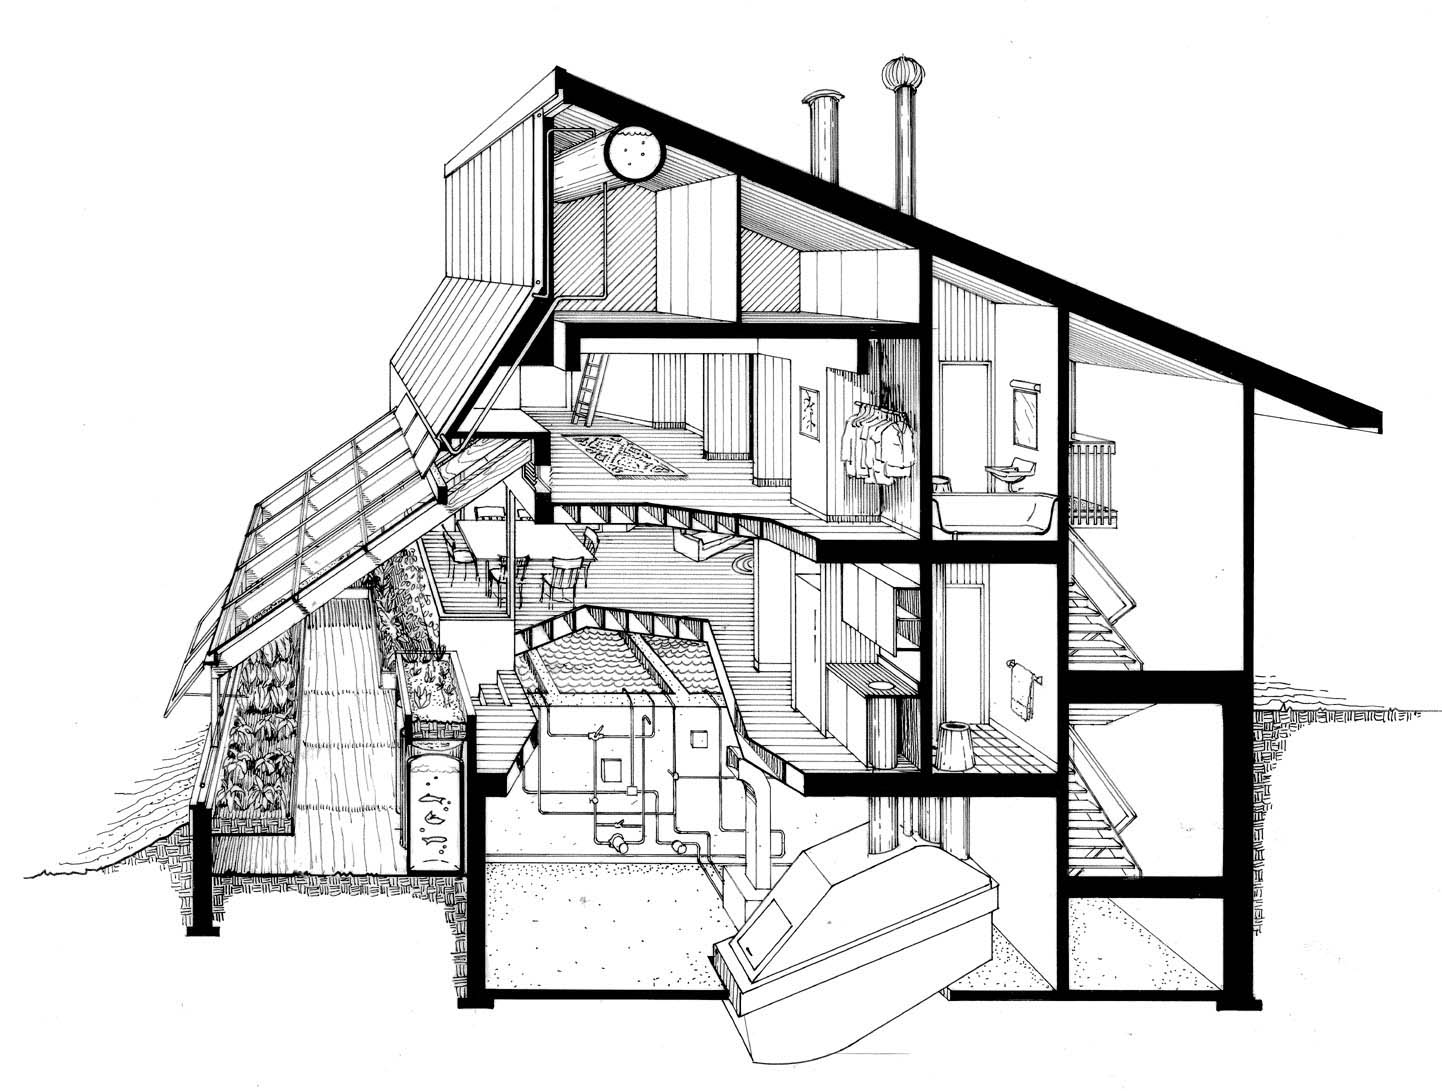 Kitchen perspective drawing - Section Of Mechanical And Dwelling Space